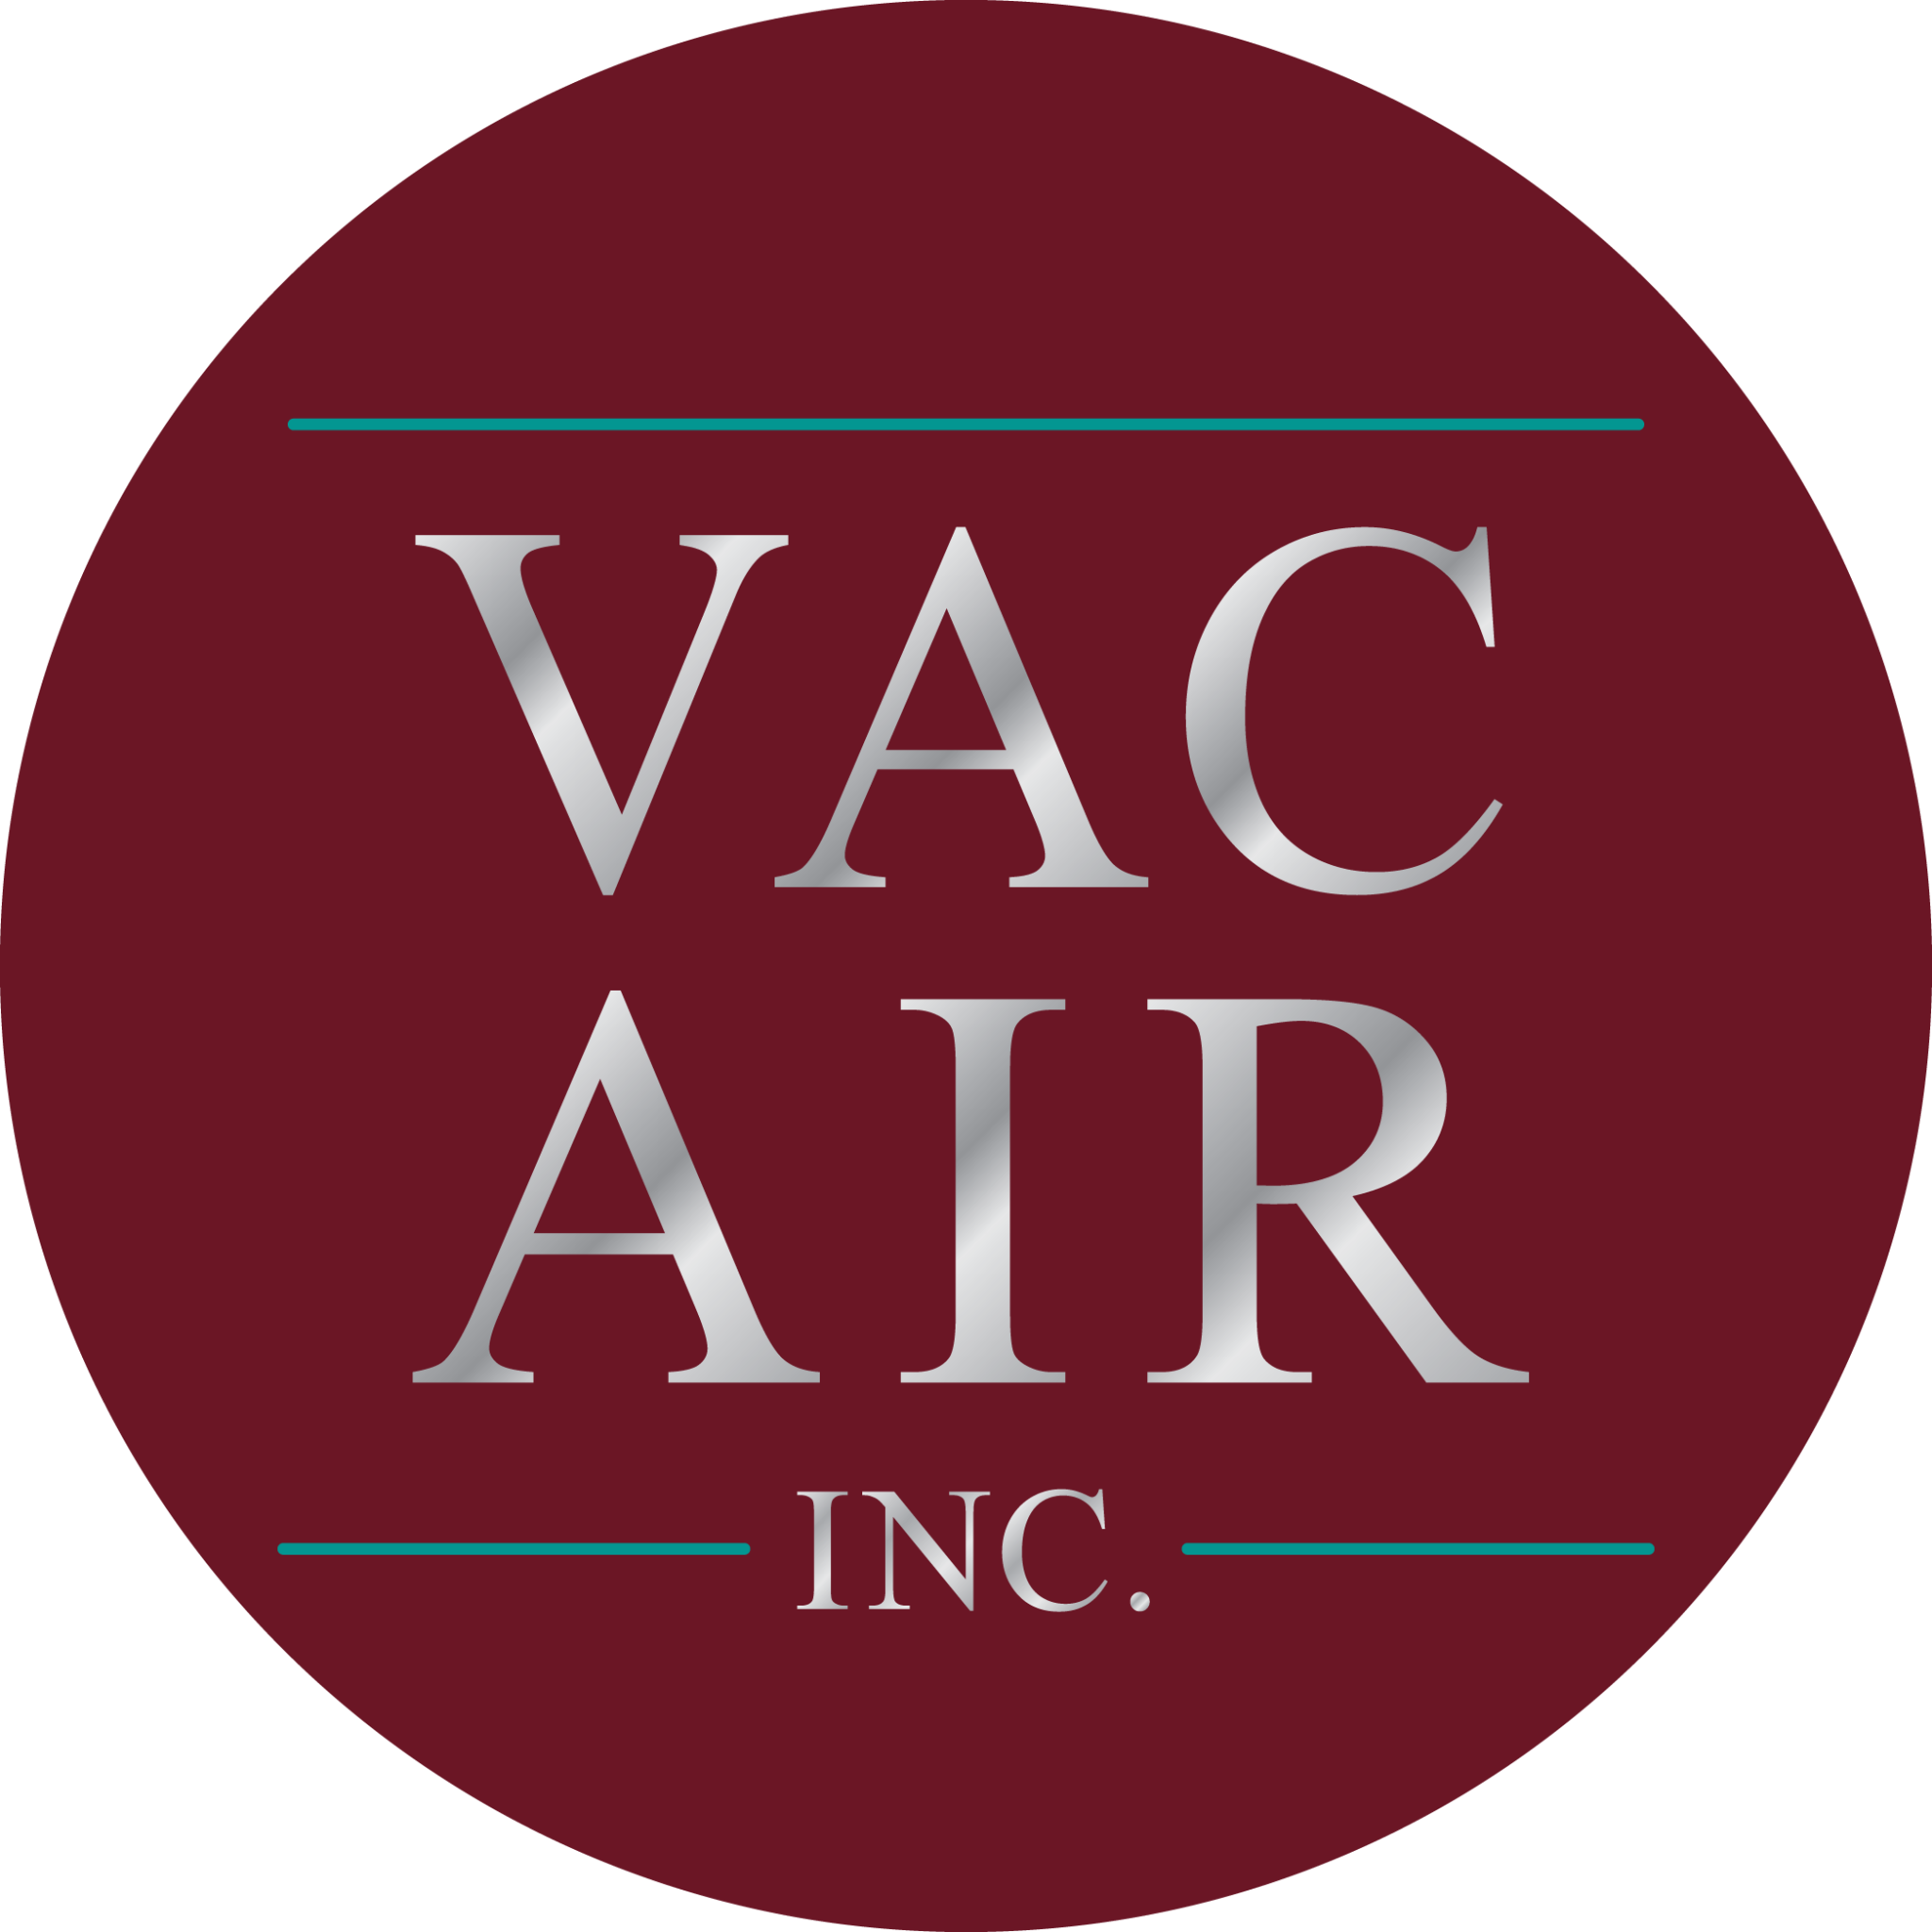 VAC AIR, Inc.